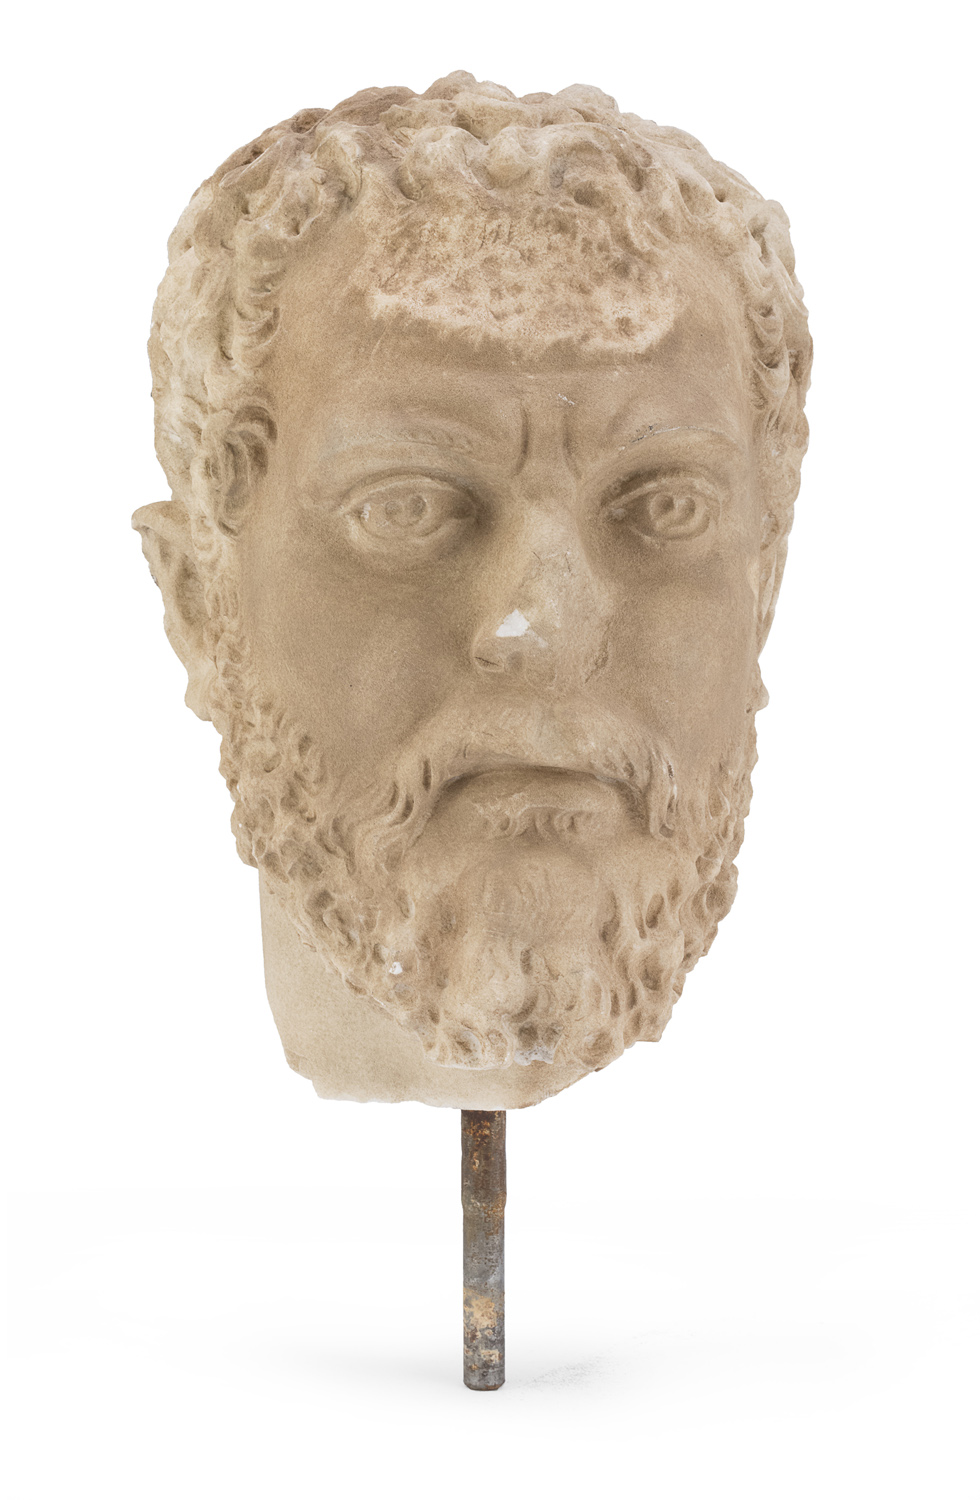 HEAD IN WHITE MARBLE 20th CENTURY